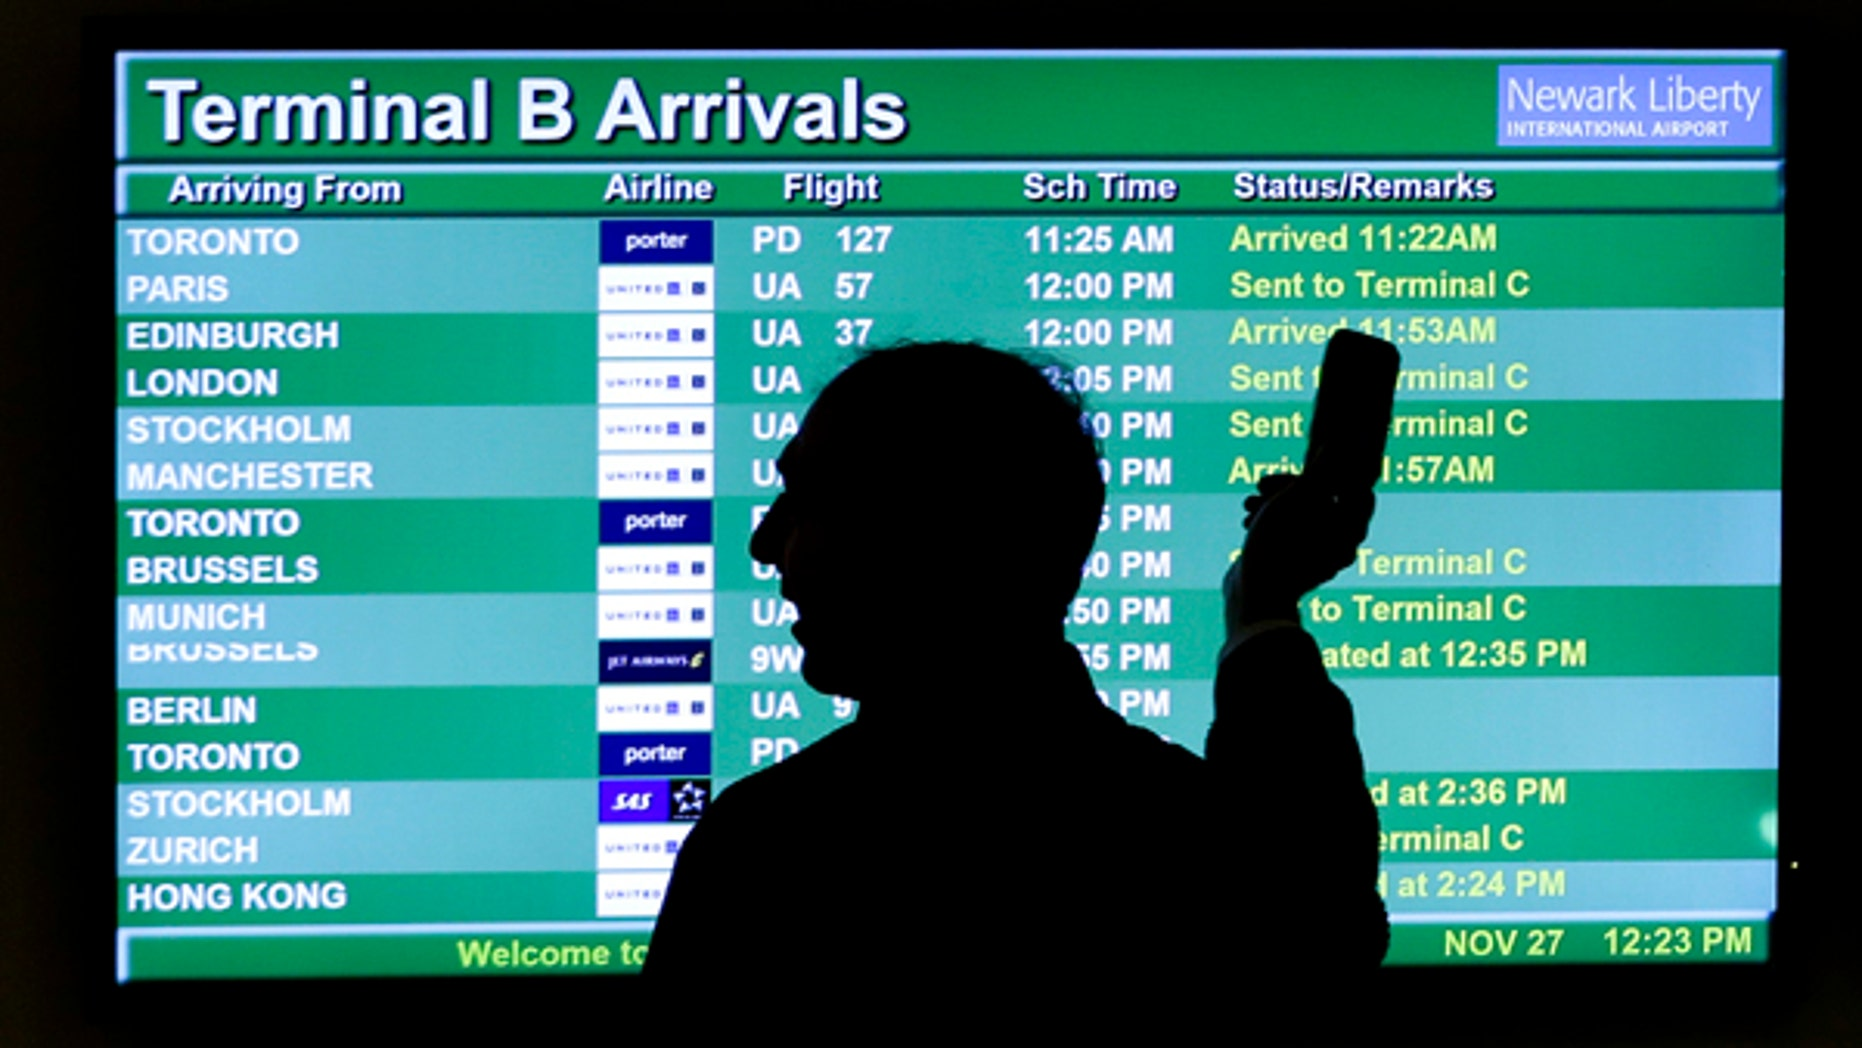 In this Wednesday, Nov. 27, 2013, file photo, a person points to a screen with an airplane travel list while holding up a phone at Newark Liberty International Airport, in Newark, N.J.